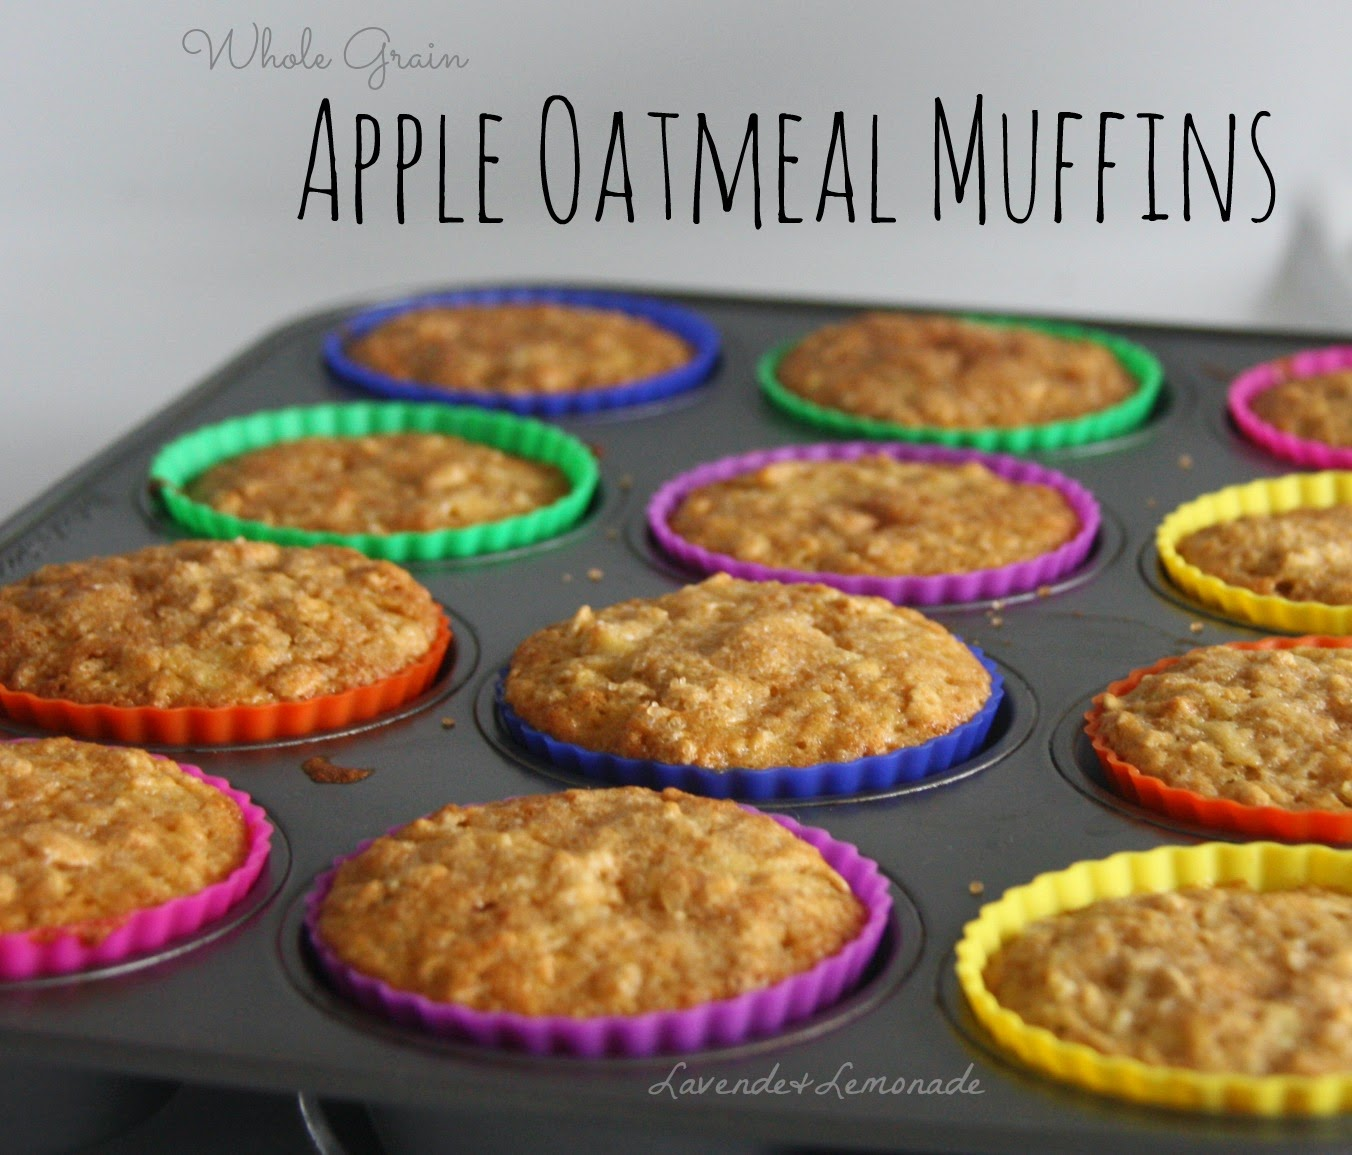 Whole Grain Apple Oatmeal Muffins - Recipe and Tutorial by Lavende&Lemonade